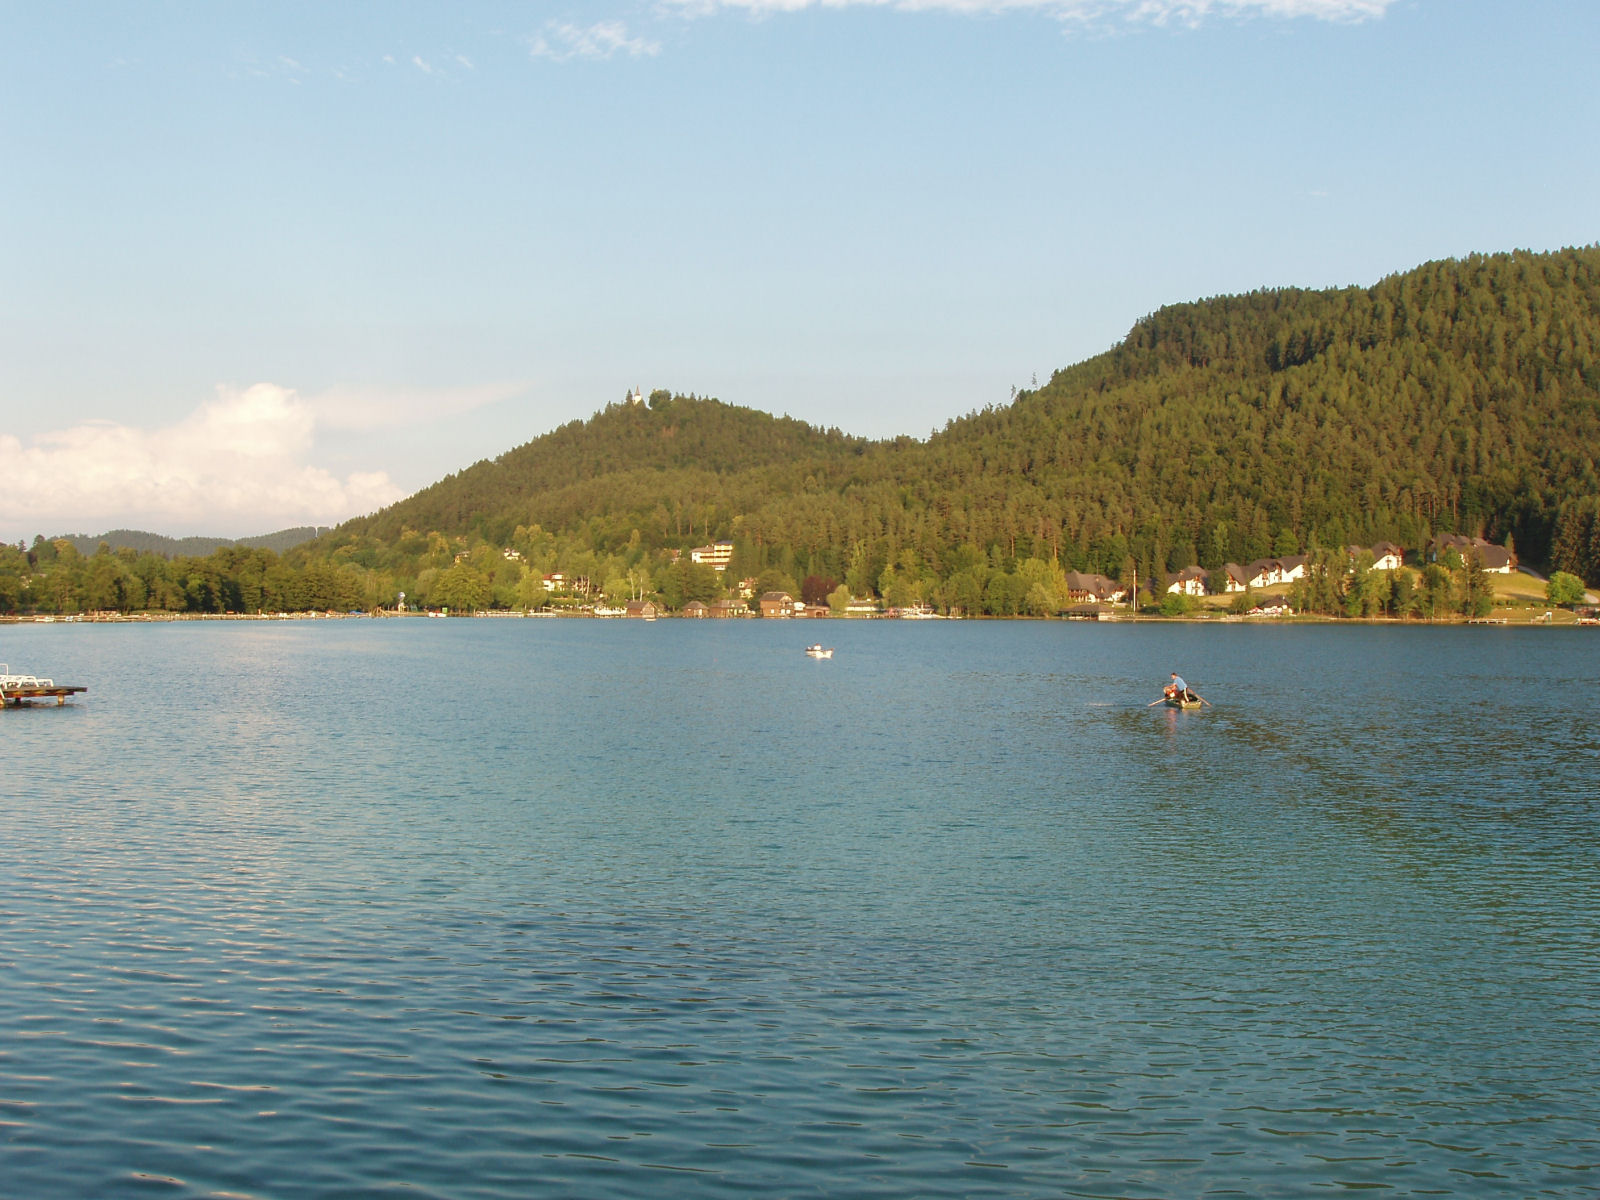 Lake Klopeiner See in Carinthia, Austria, is renowned for its drinking water quality